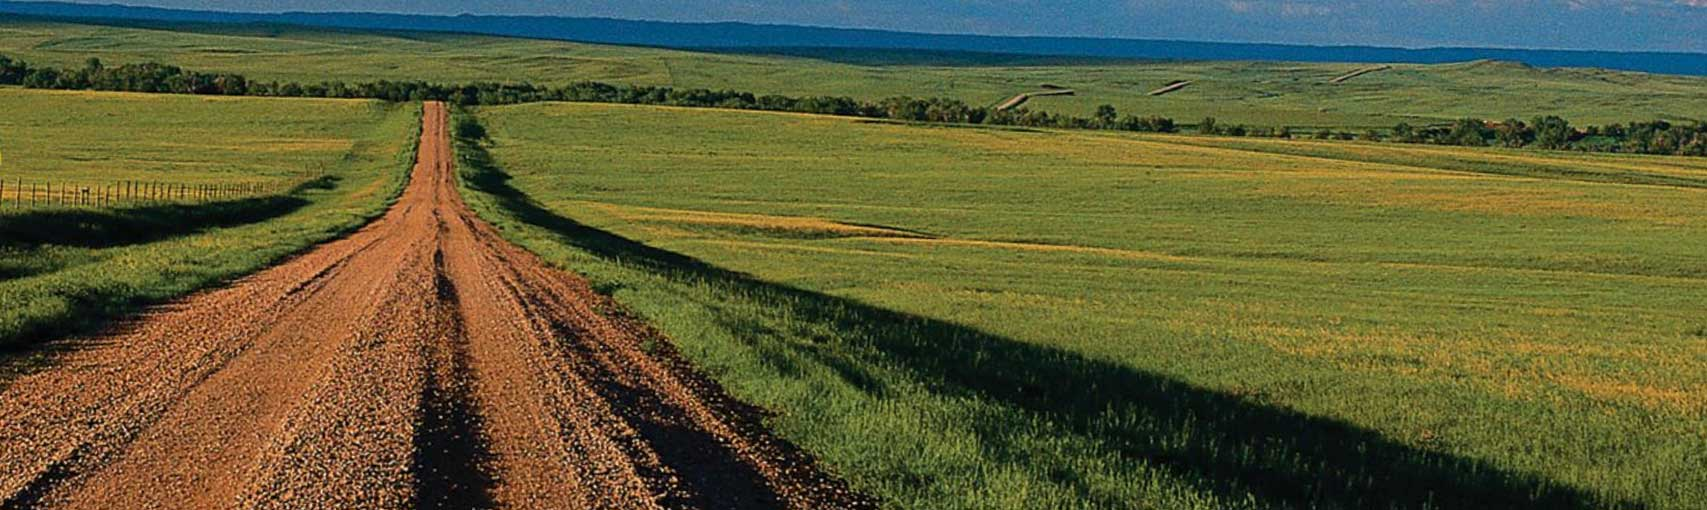 A long dirt road forges a path through the green pastures of Nebraska.  What adventures lie just over the horizon?